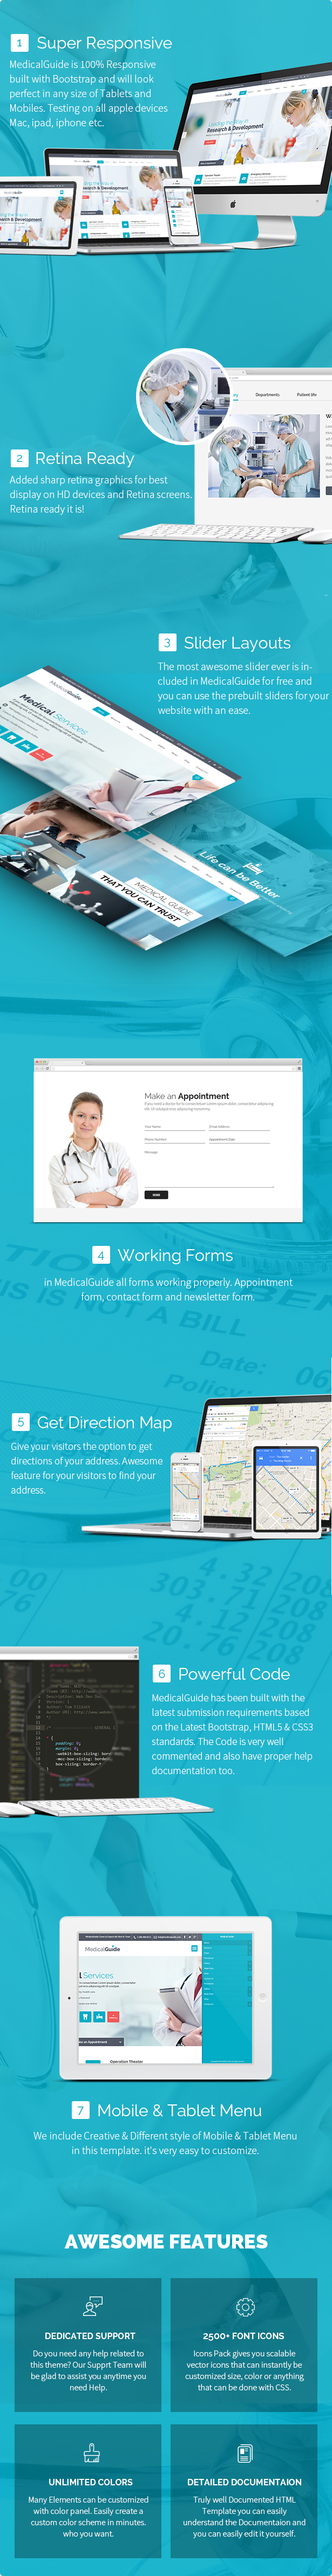 MedicalGuide - Health and Medical HTML Template